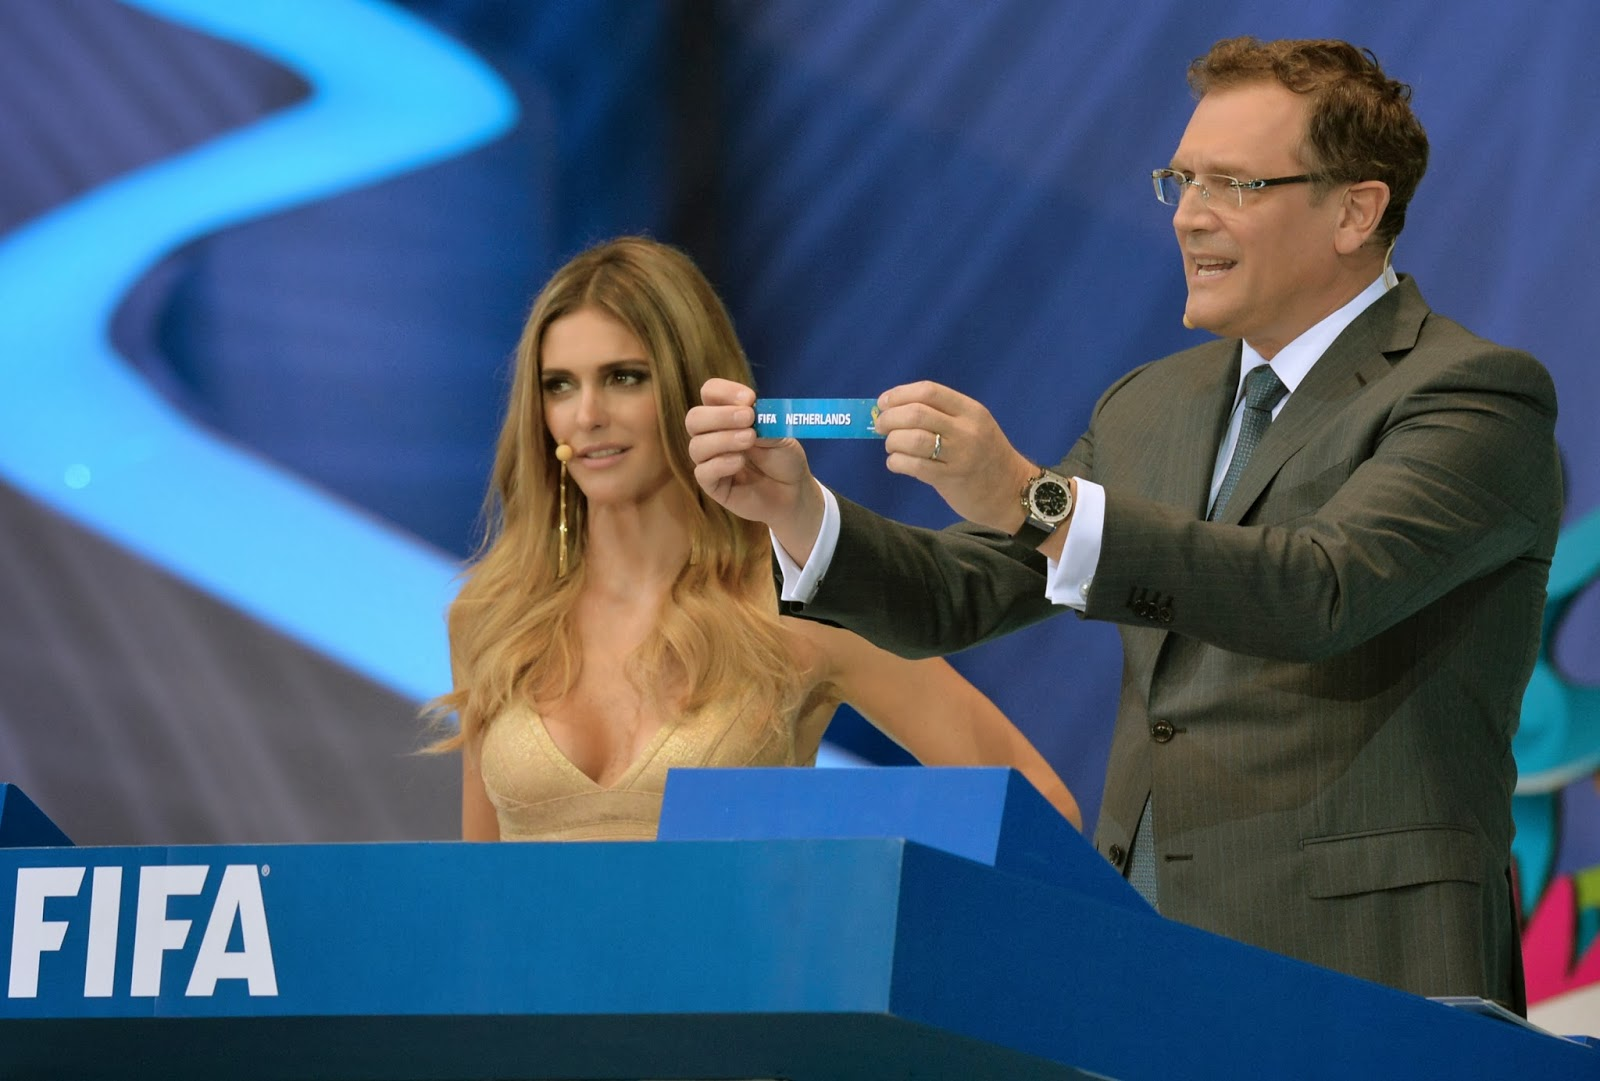 Bahia, Brazil, Costa do Sauipe, Draw, Fate, Fernanda Lima, FIFA, FIFA 2014, FIFA 2014 World Cup, FIFA World Cup, FIFA World Cup 2014, Jerome Valcke, Netherlands, Secretary General, State, World Cup,